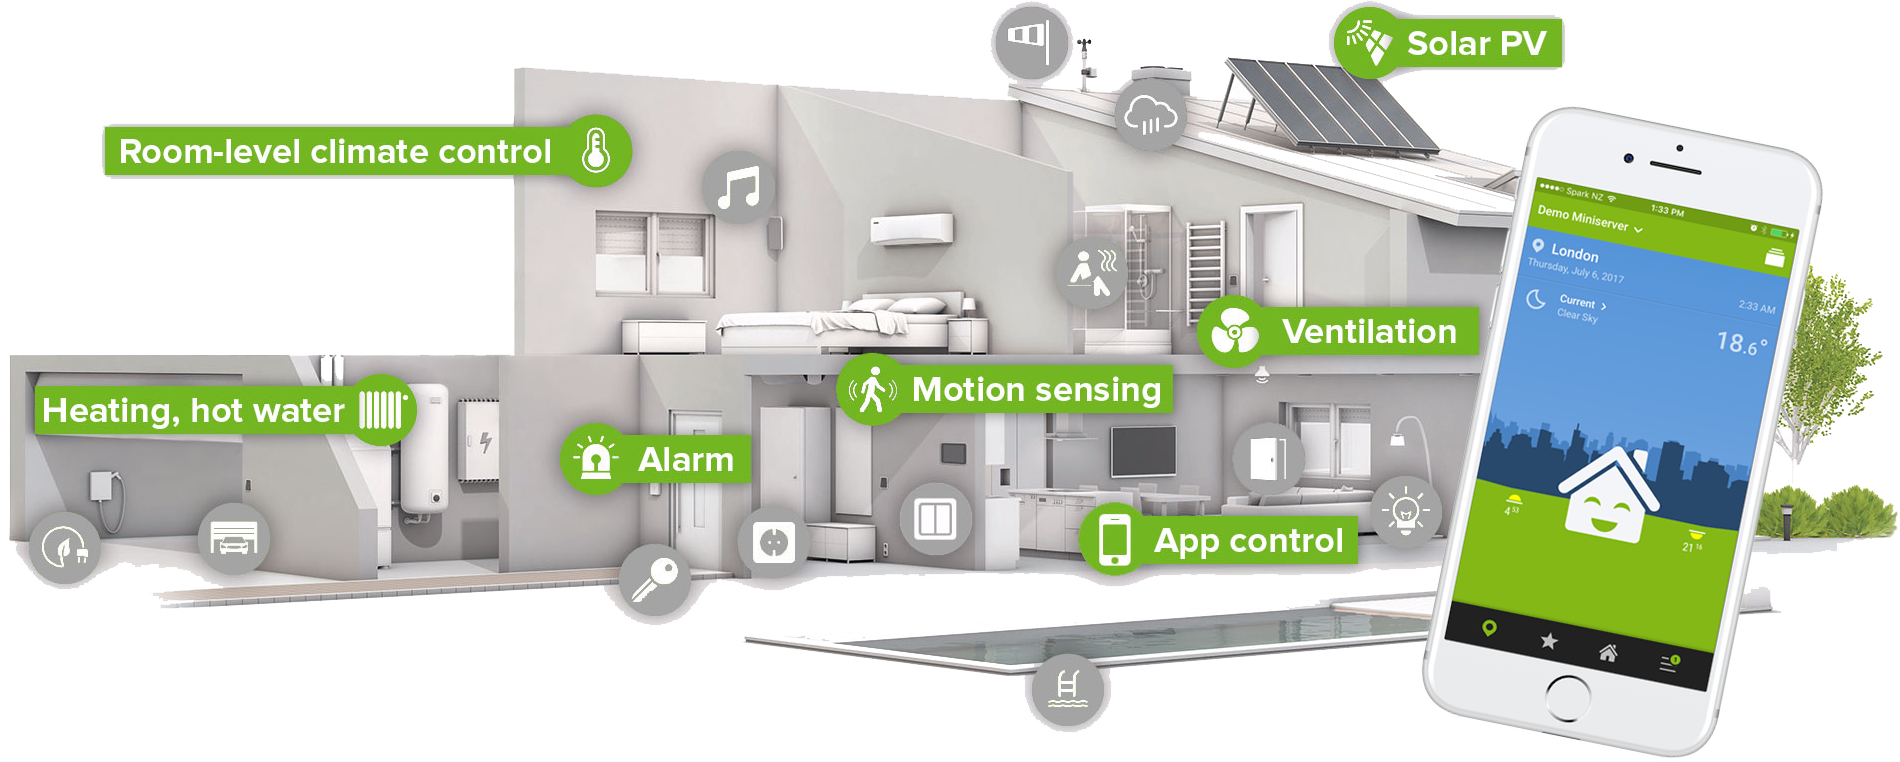 Smart Building systems     Comfort,efficiency and simple control of the systems in your building - from anywhere in the world.